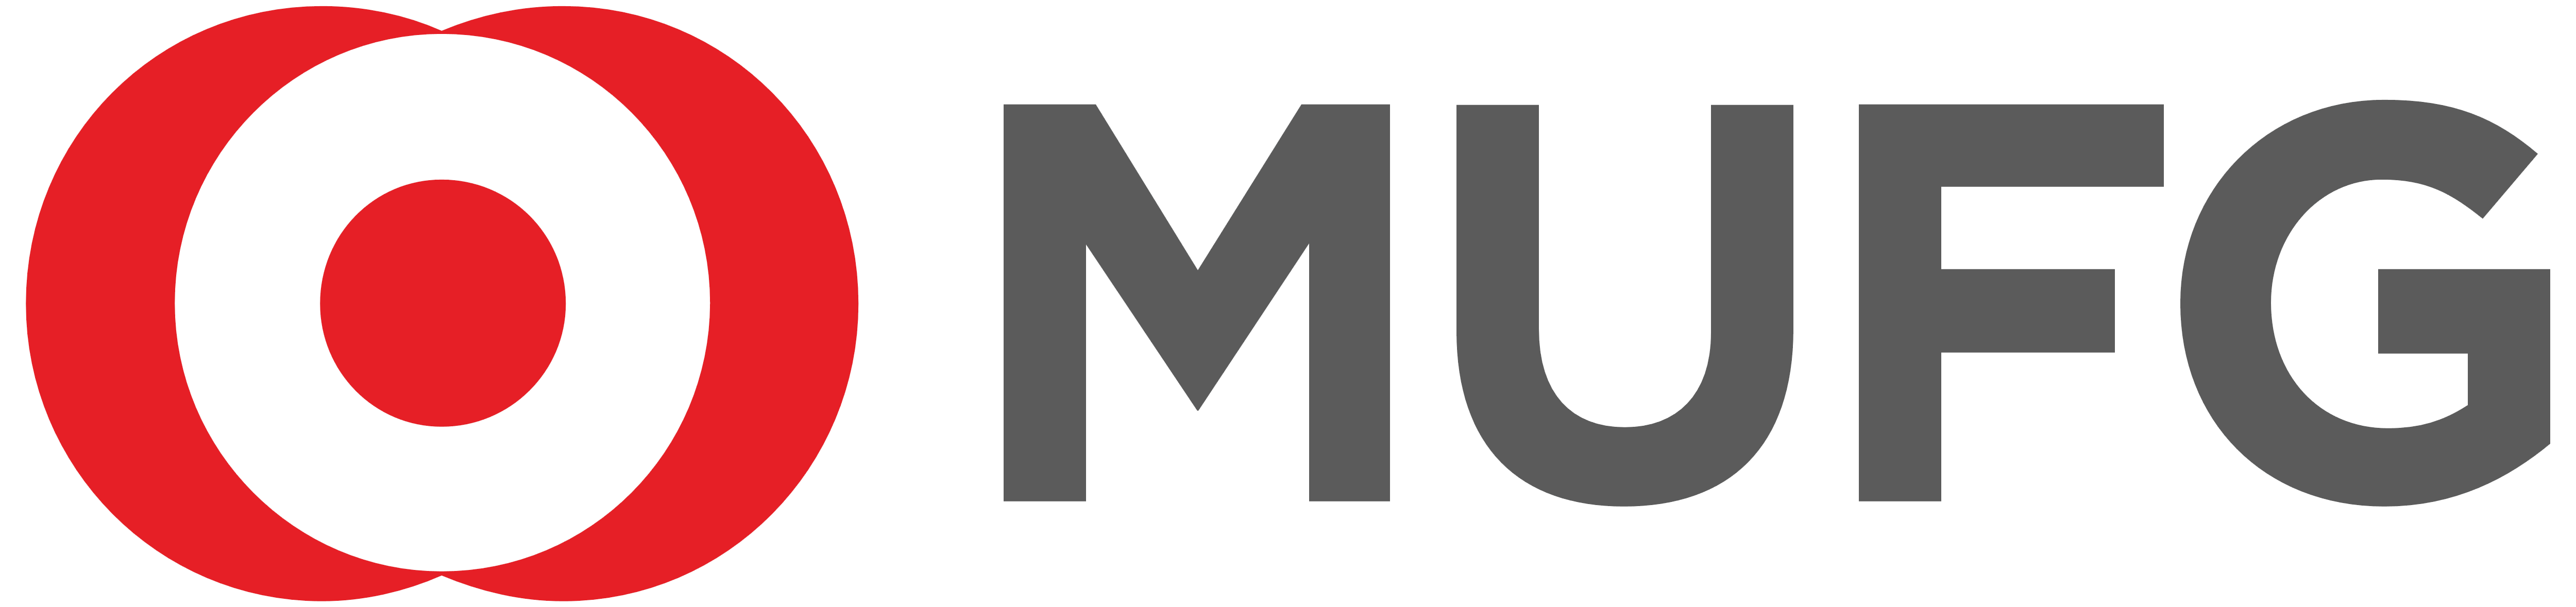 MUFG -Mitsubishi UFJ Financial Group - Mufg PNG